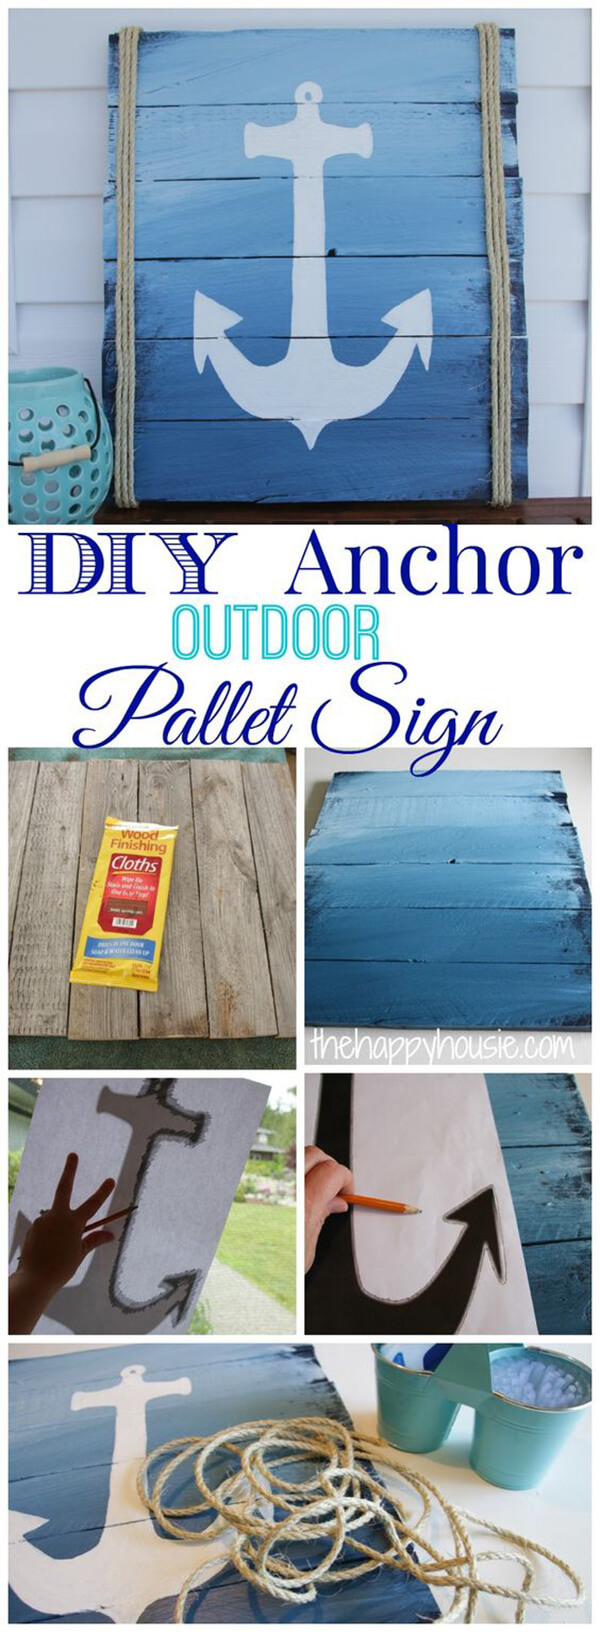 Stencil an Anchor on a Pallet Sign